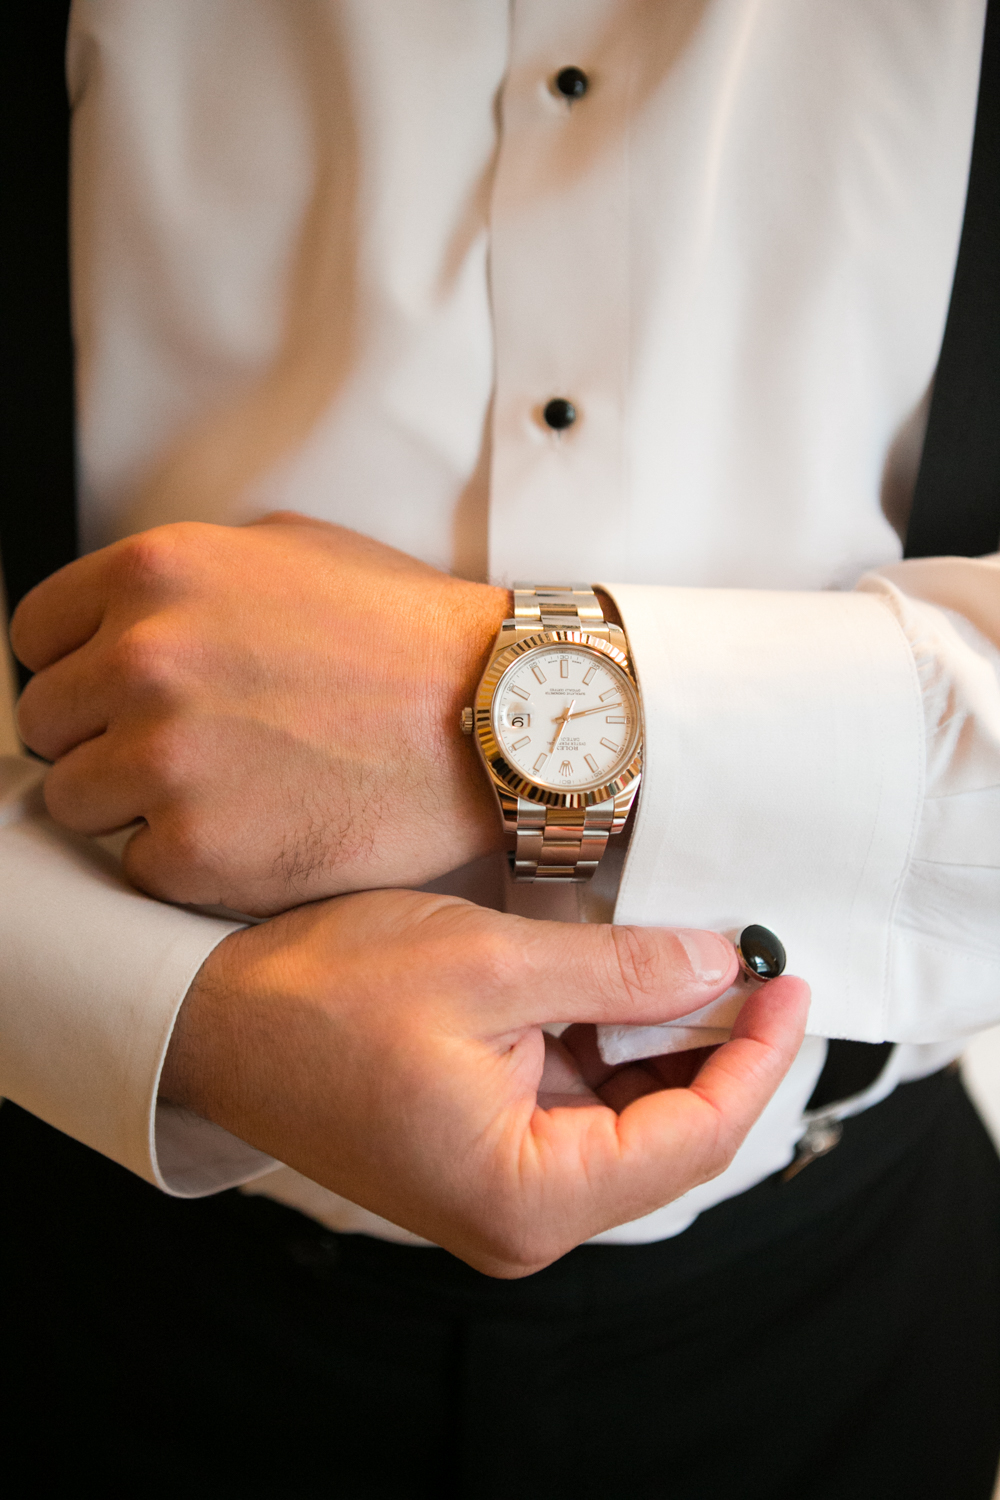 Groom's Rolex Watch